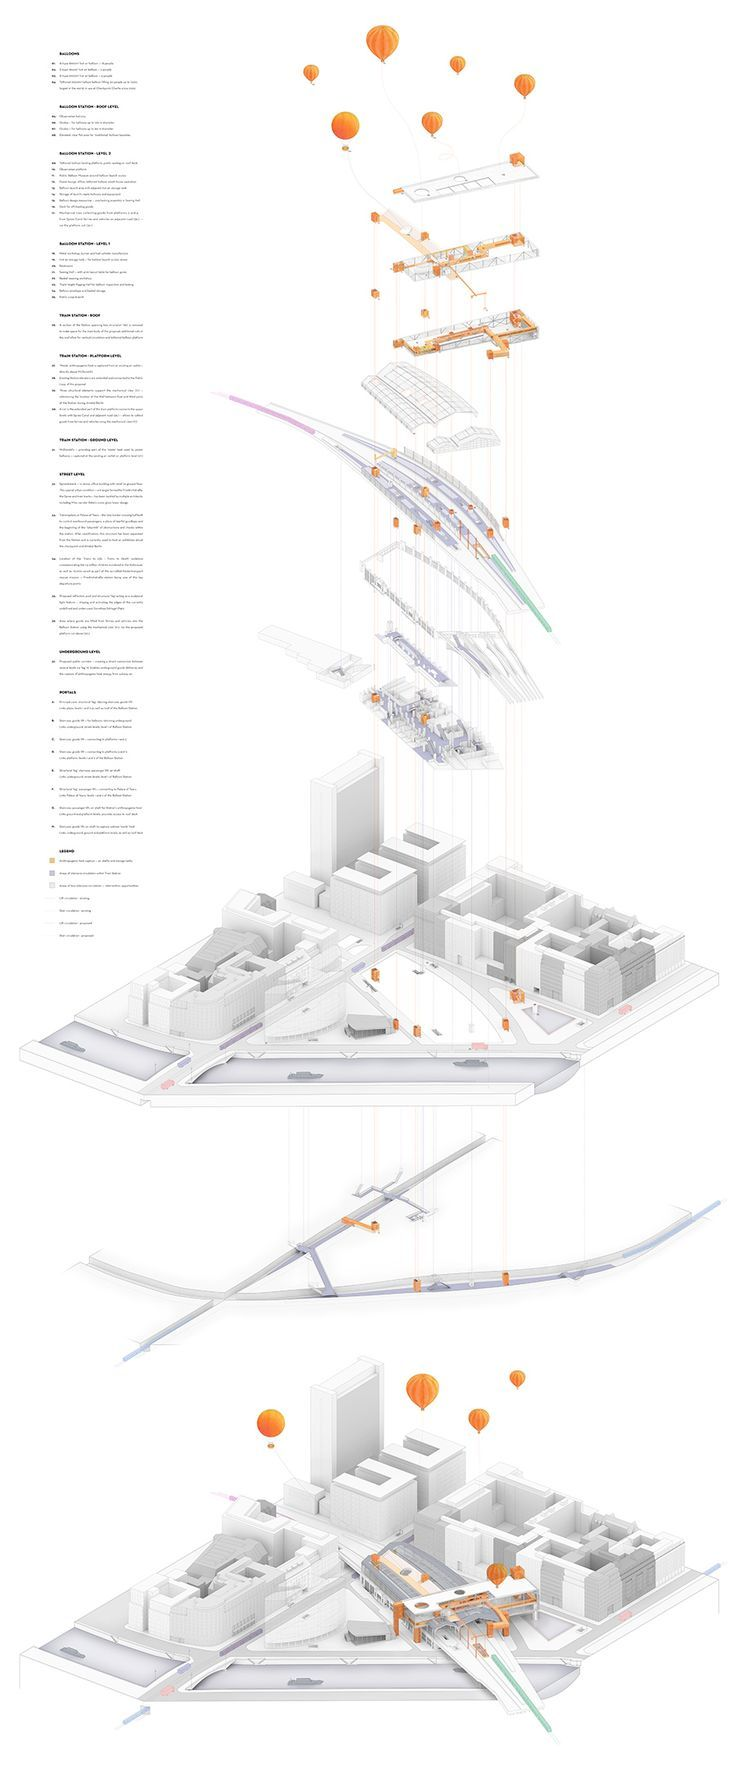 010_Exploded-axonometric_relationship-between-Balloon-Station-and-context-on-all-levels: